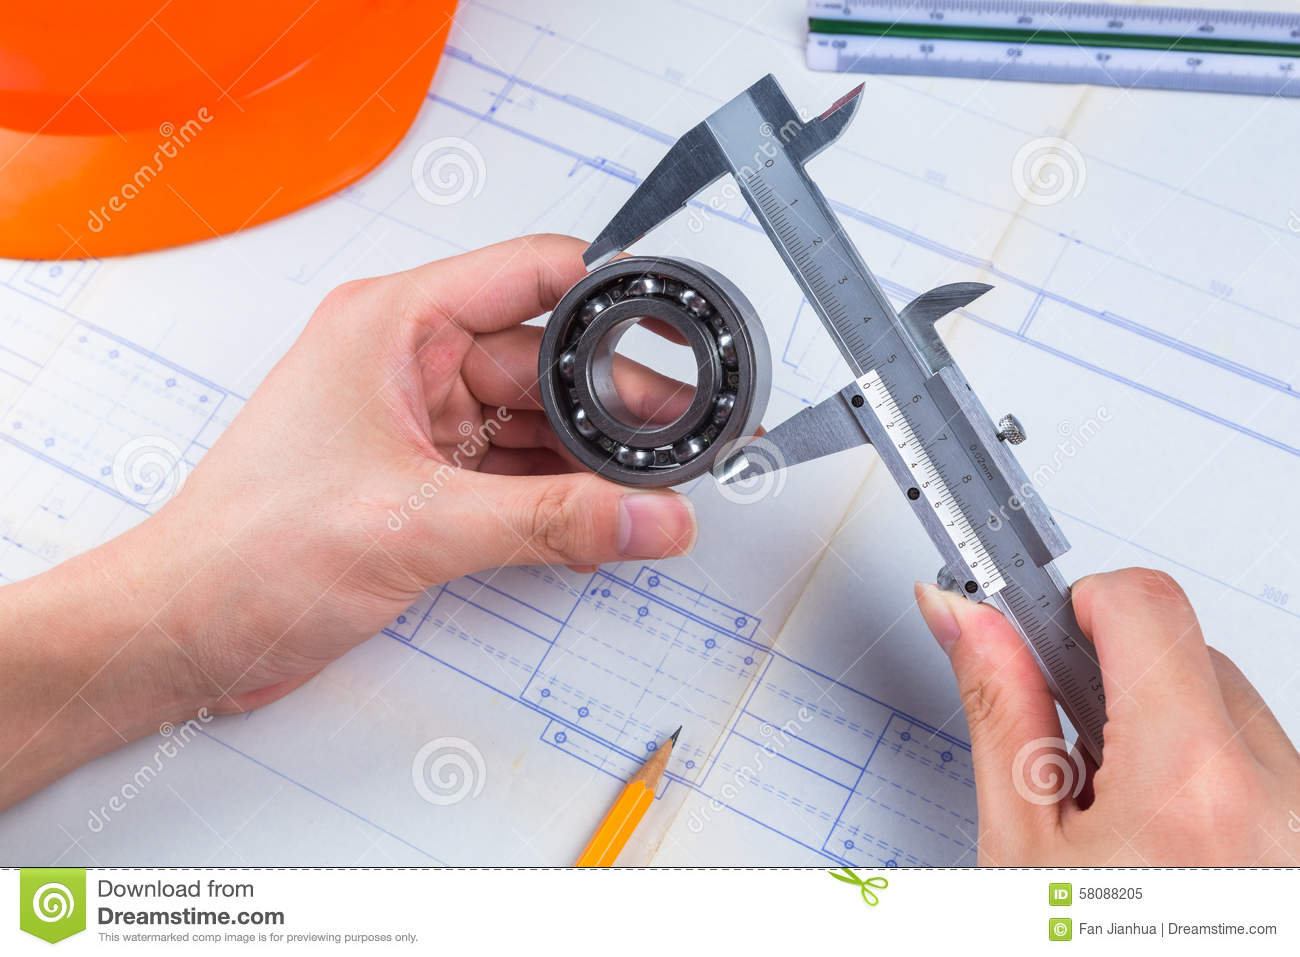 Mechanical Design Engineer in drawing